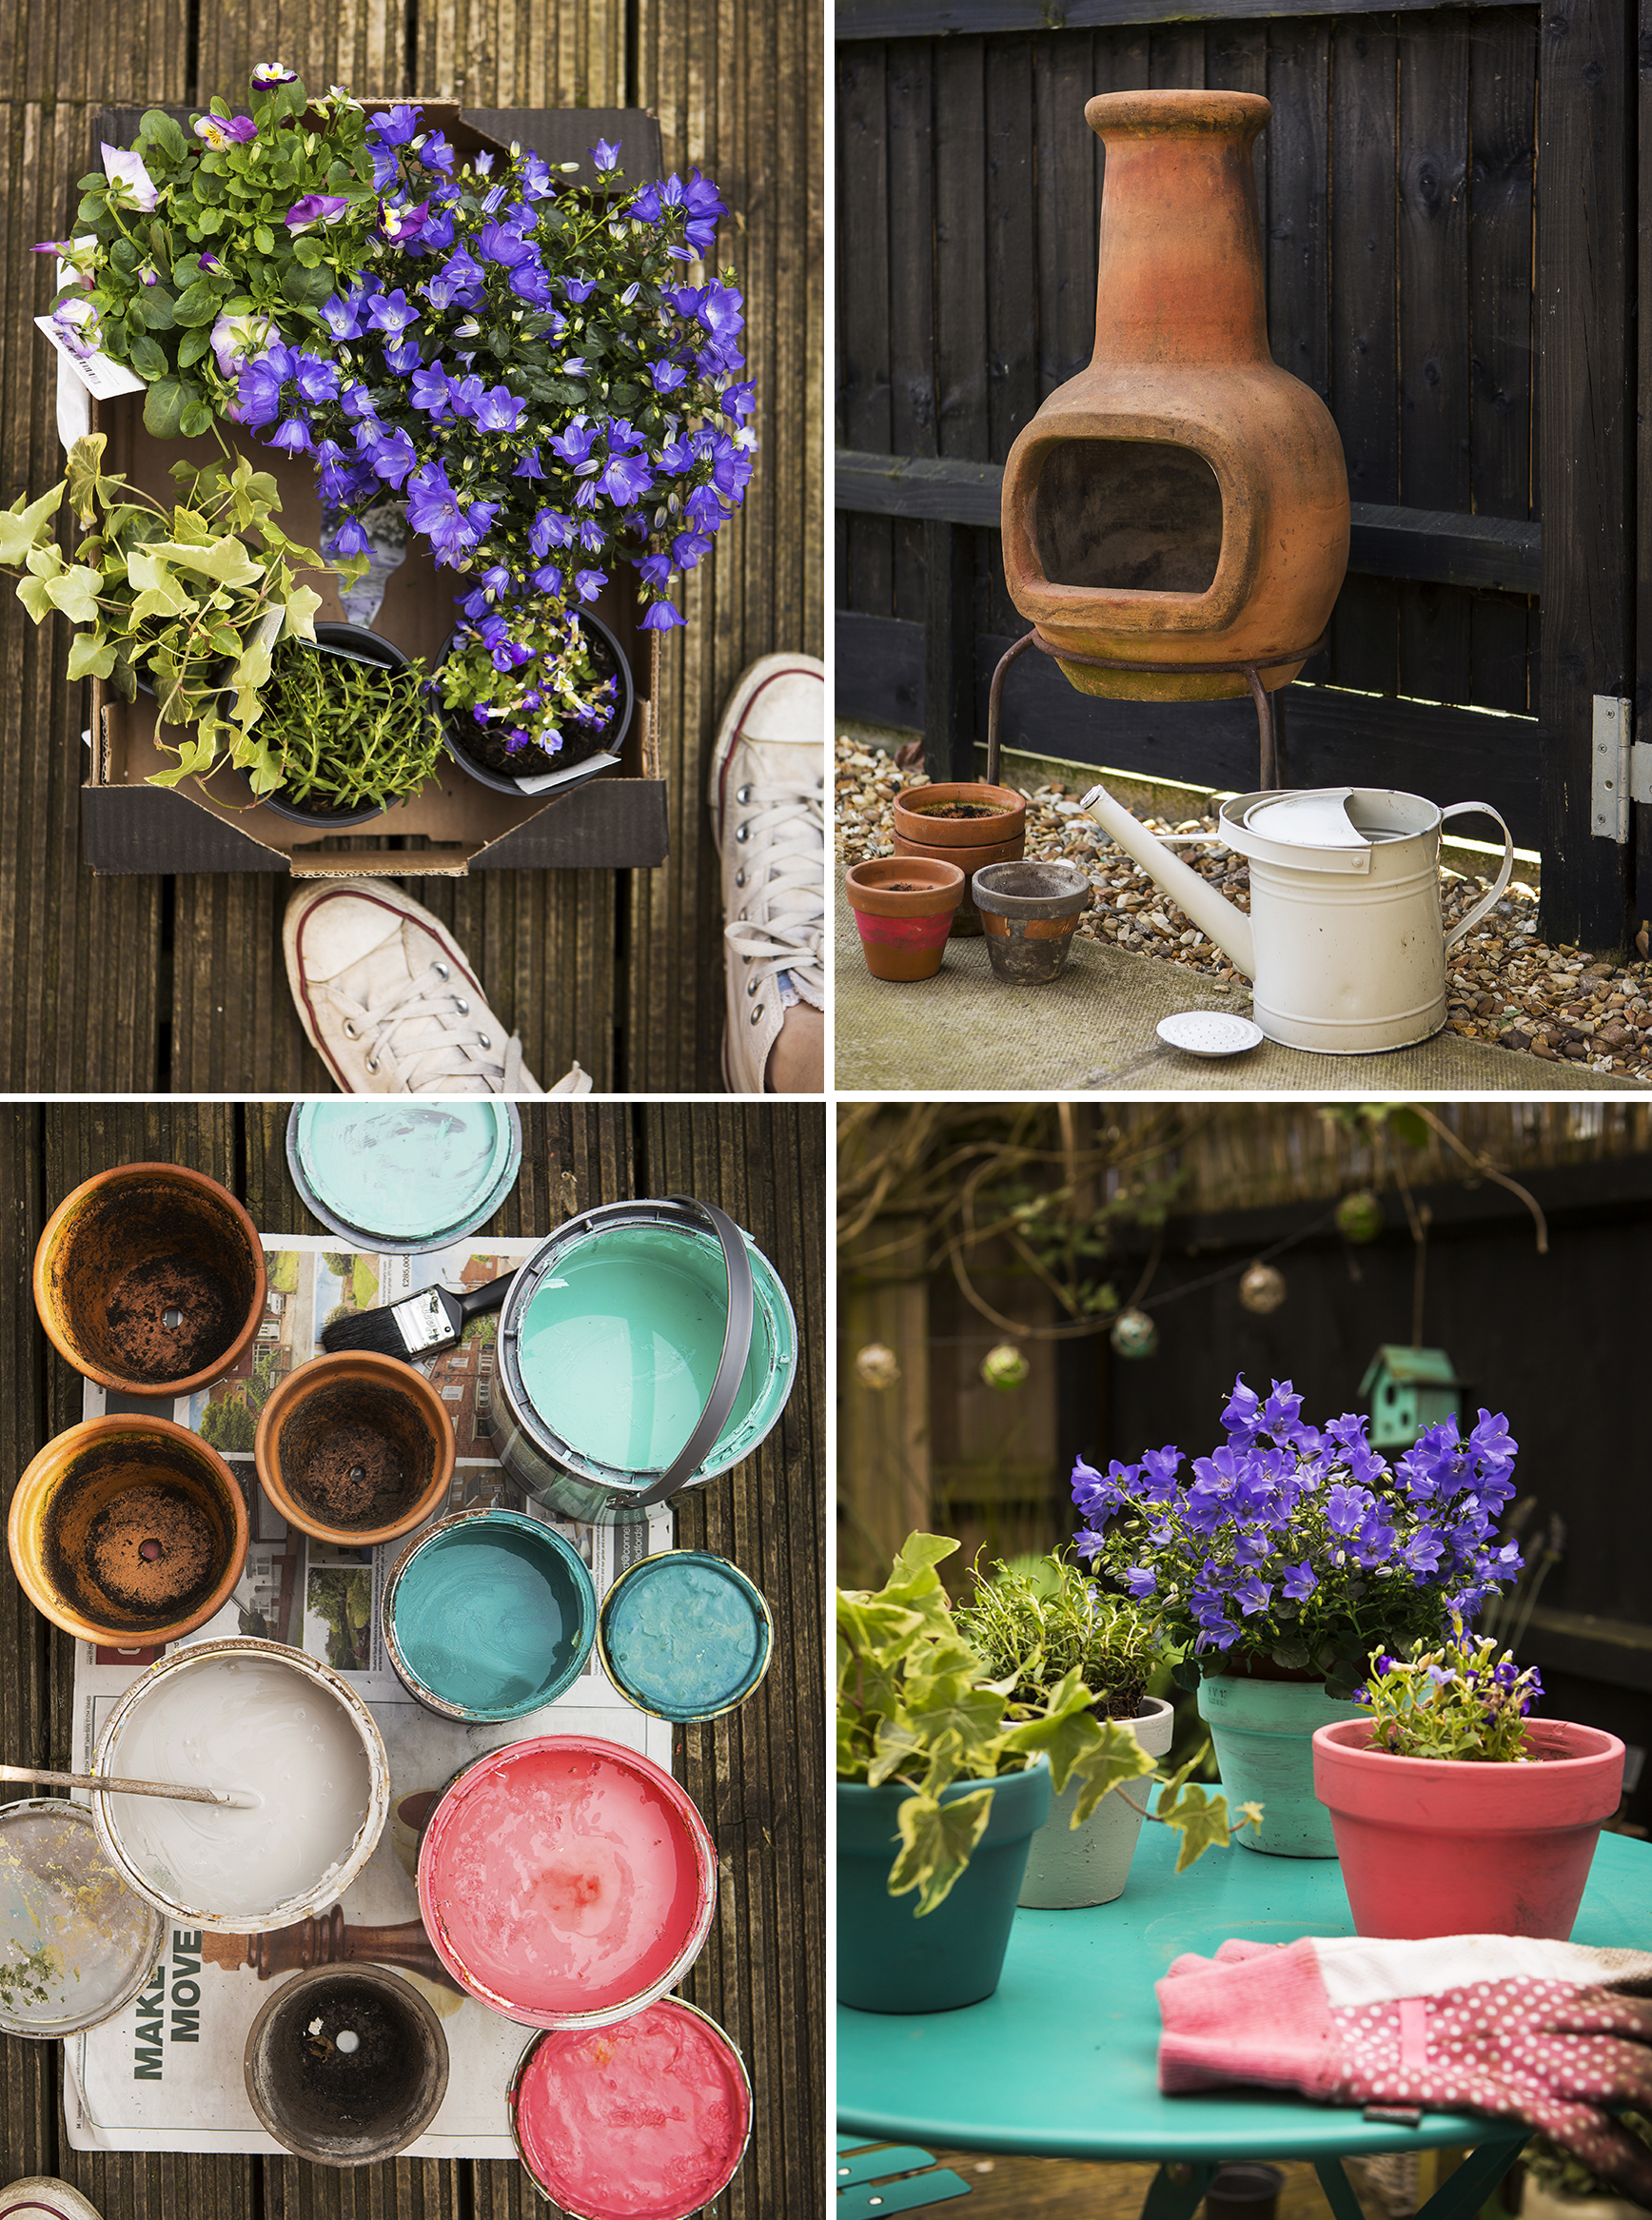 52 weekends Pottering | Garden inspiration | Stacy Grant Creative Photographer